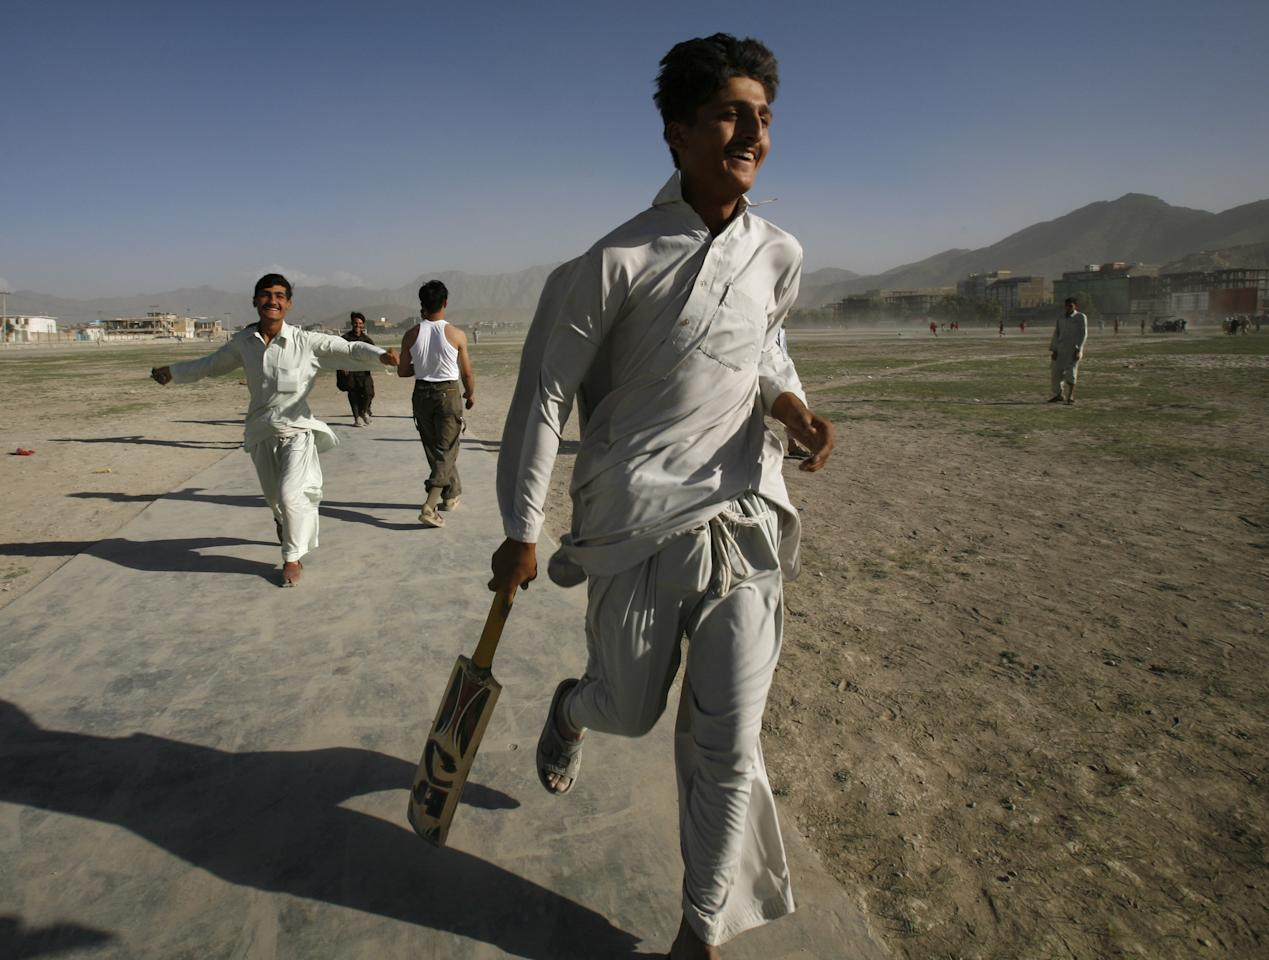 KABUL, AFGHANISTAN - JULY 27:  Afghan cricket players celebrate their team's win during a local league game July 27, 2007 in Kabul, Afghanistan. After the fall of the Taliban when the refugees returned from camps in Pakistan they came back having learned a new sport, Cricket. There are now leagues spread across the country playing in dusty fields. For the average Afghan team the equipment is cheap but the uniforms are not affordable so they play in sandals and their traditional shawal kamis. (Photo by Paula Bronstein/Getty Images)